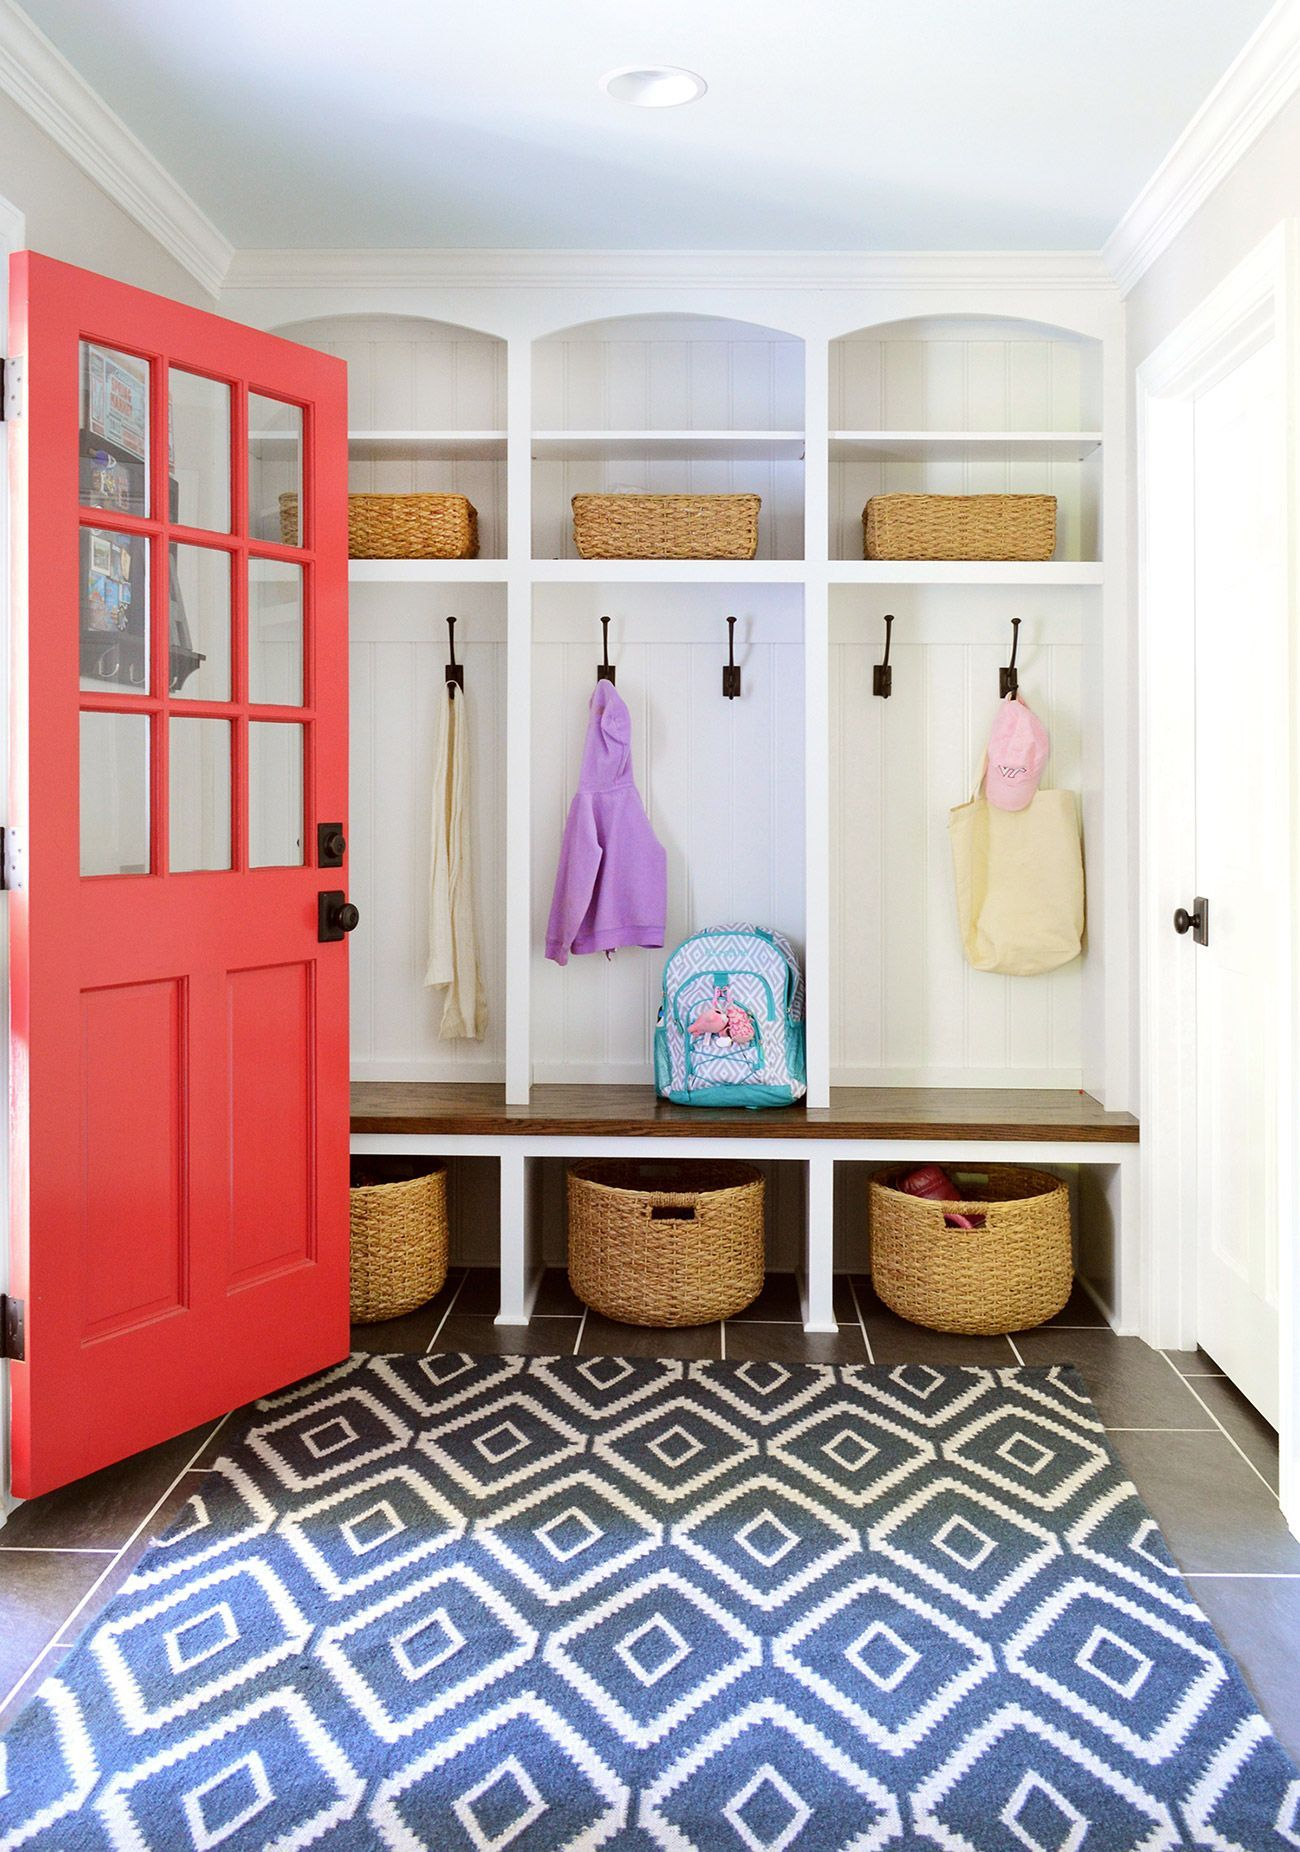 Mud rooms You have to see